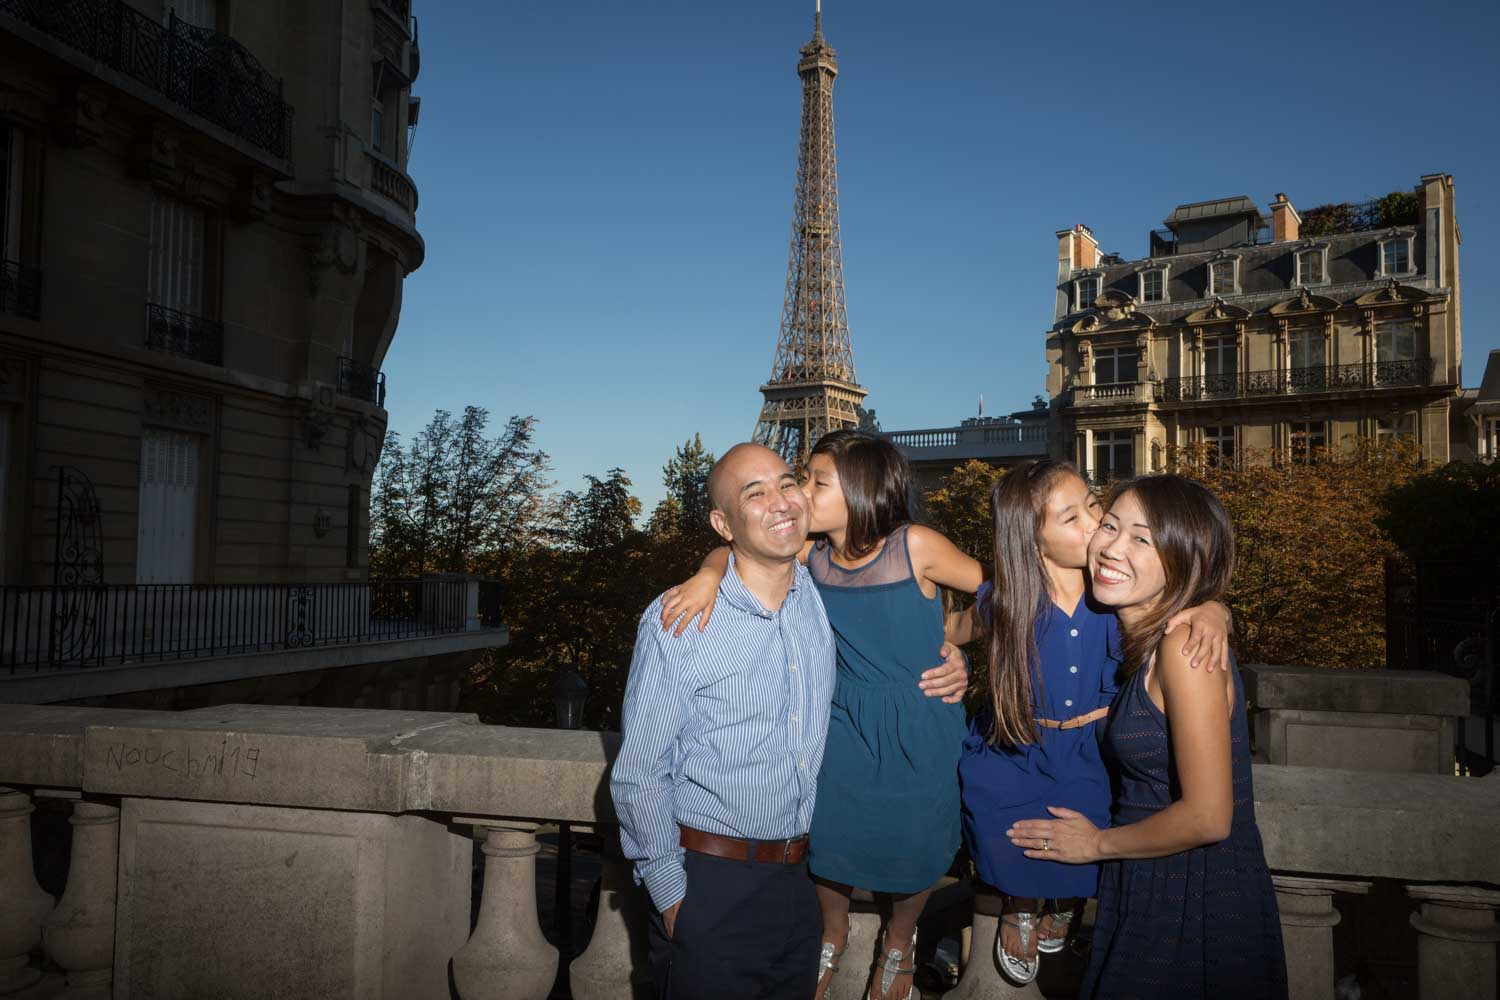 kids are kissing parents in paris